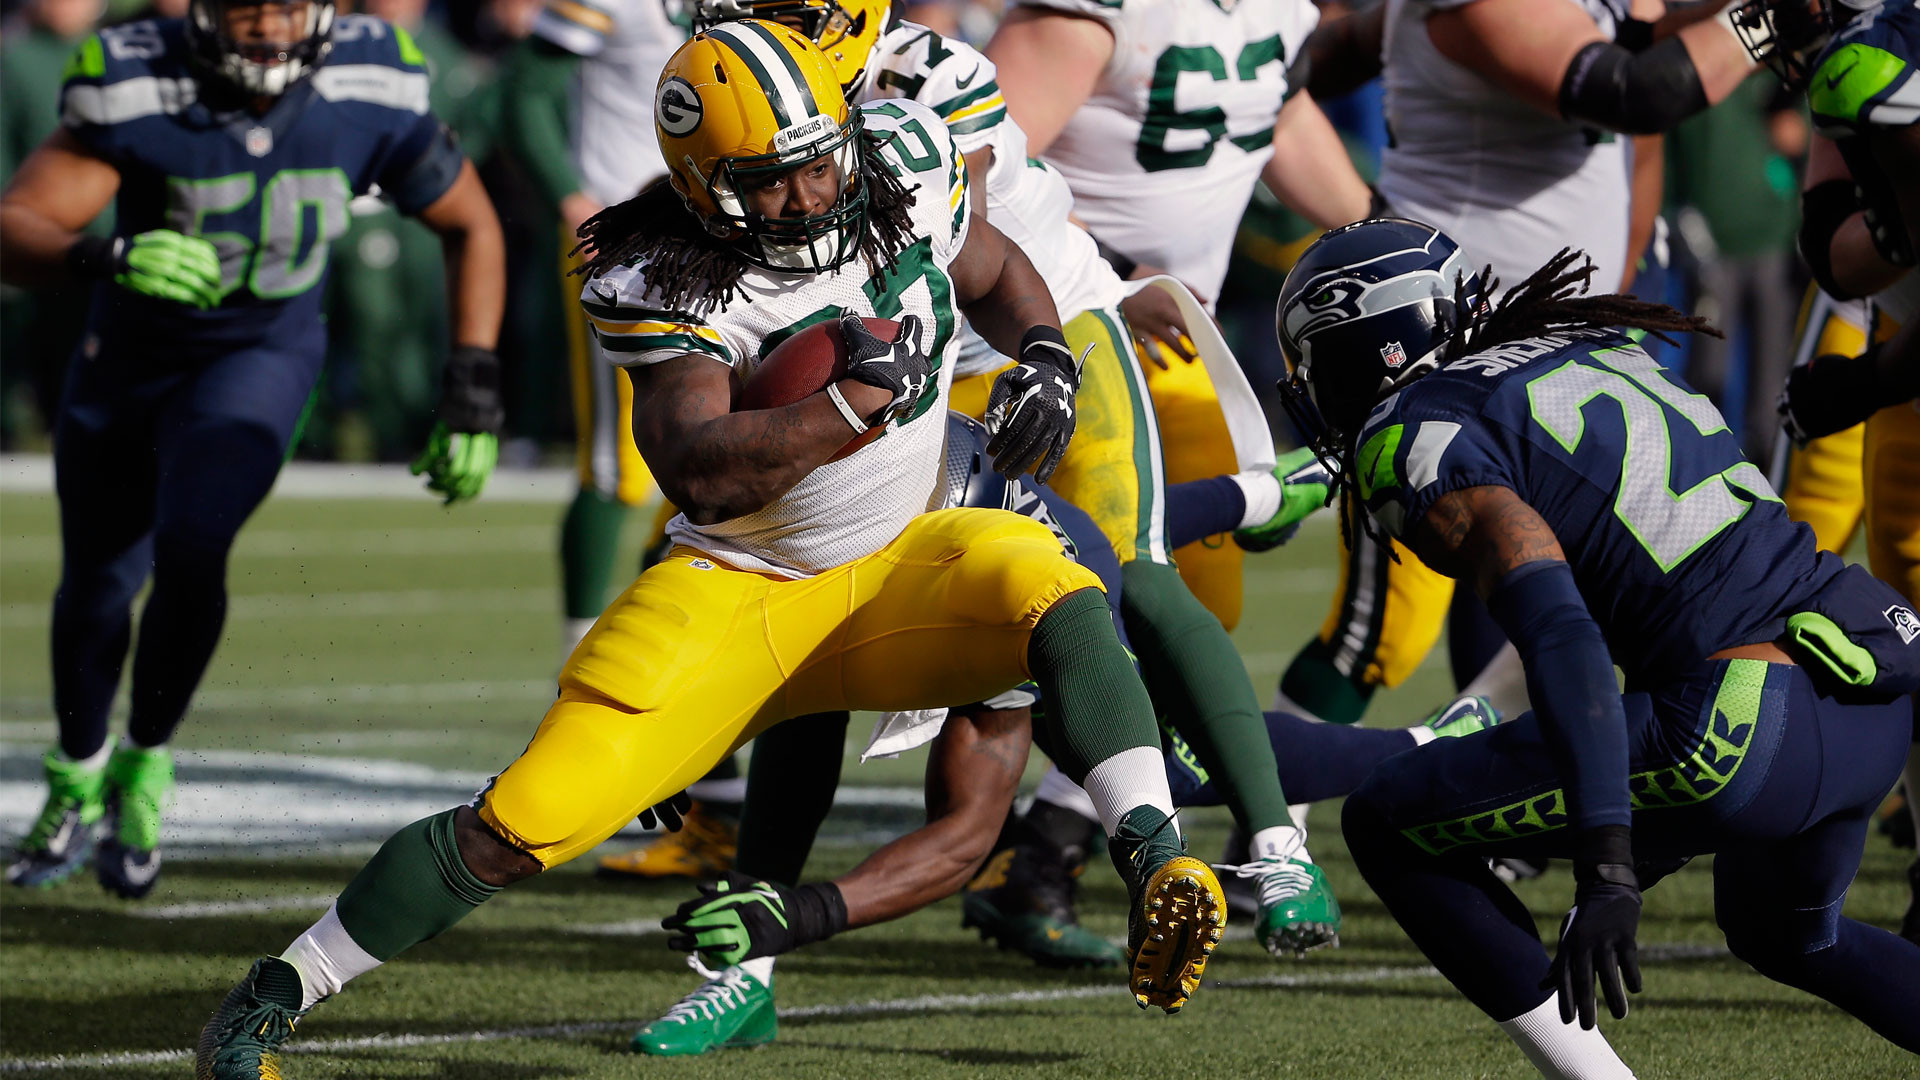 1920x1080 Former Packers RB Eddie Lacy agrees to deal with Seahawks | NBCS Bay Area